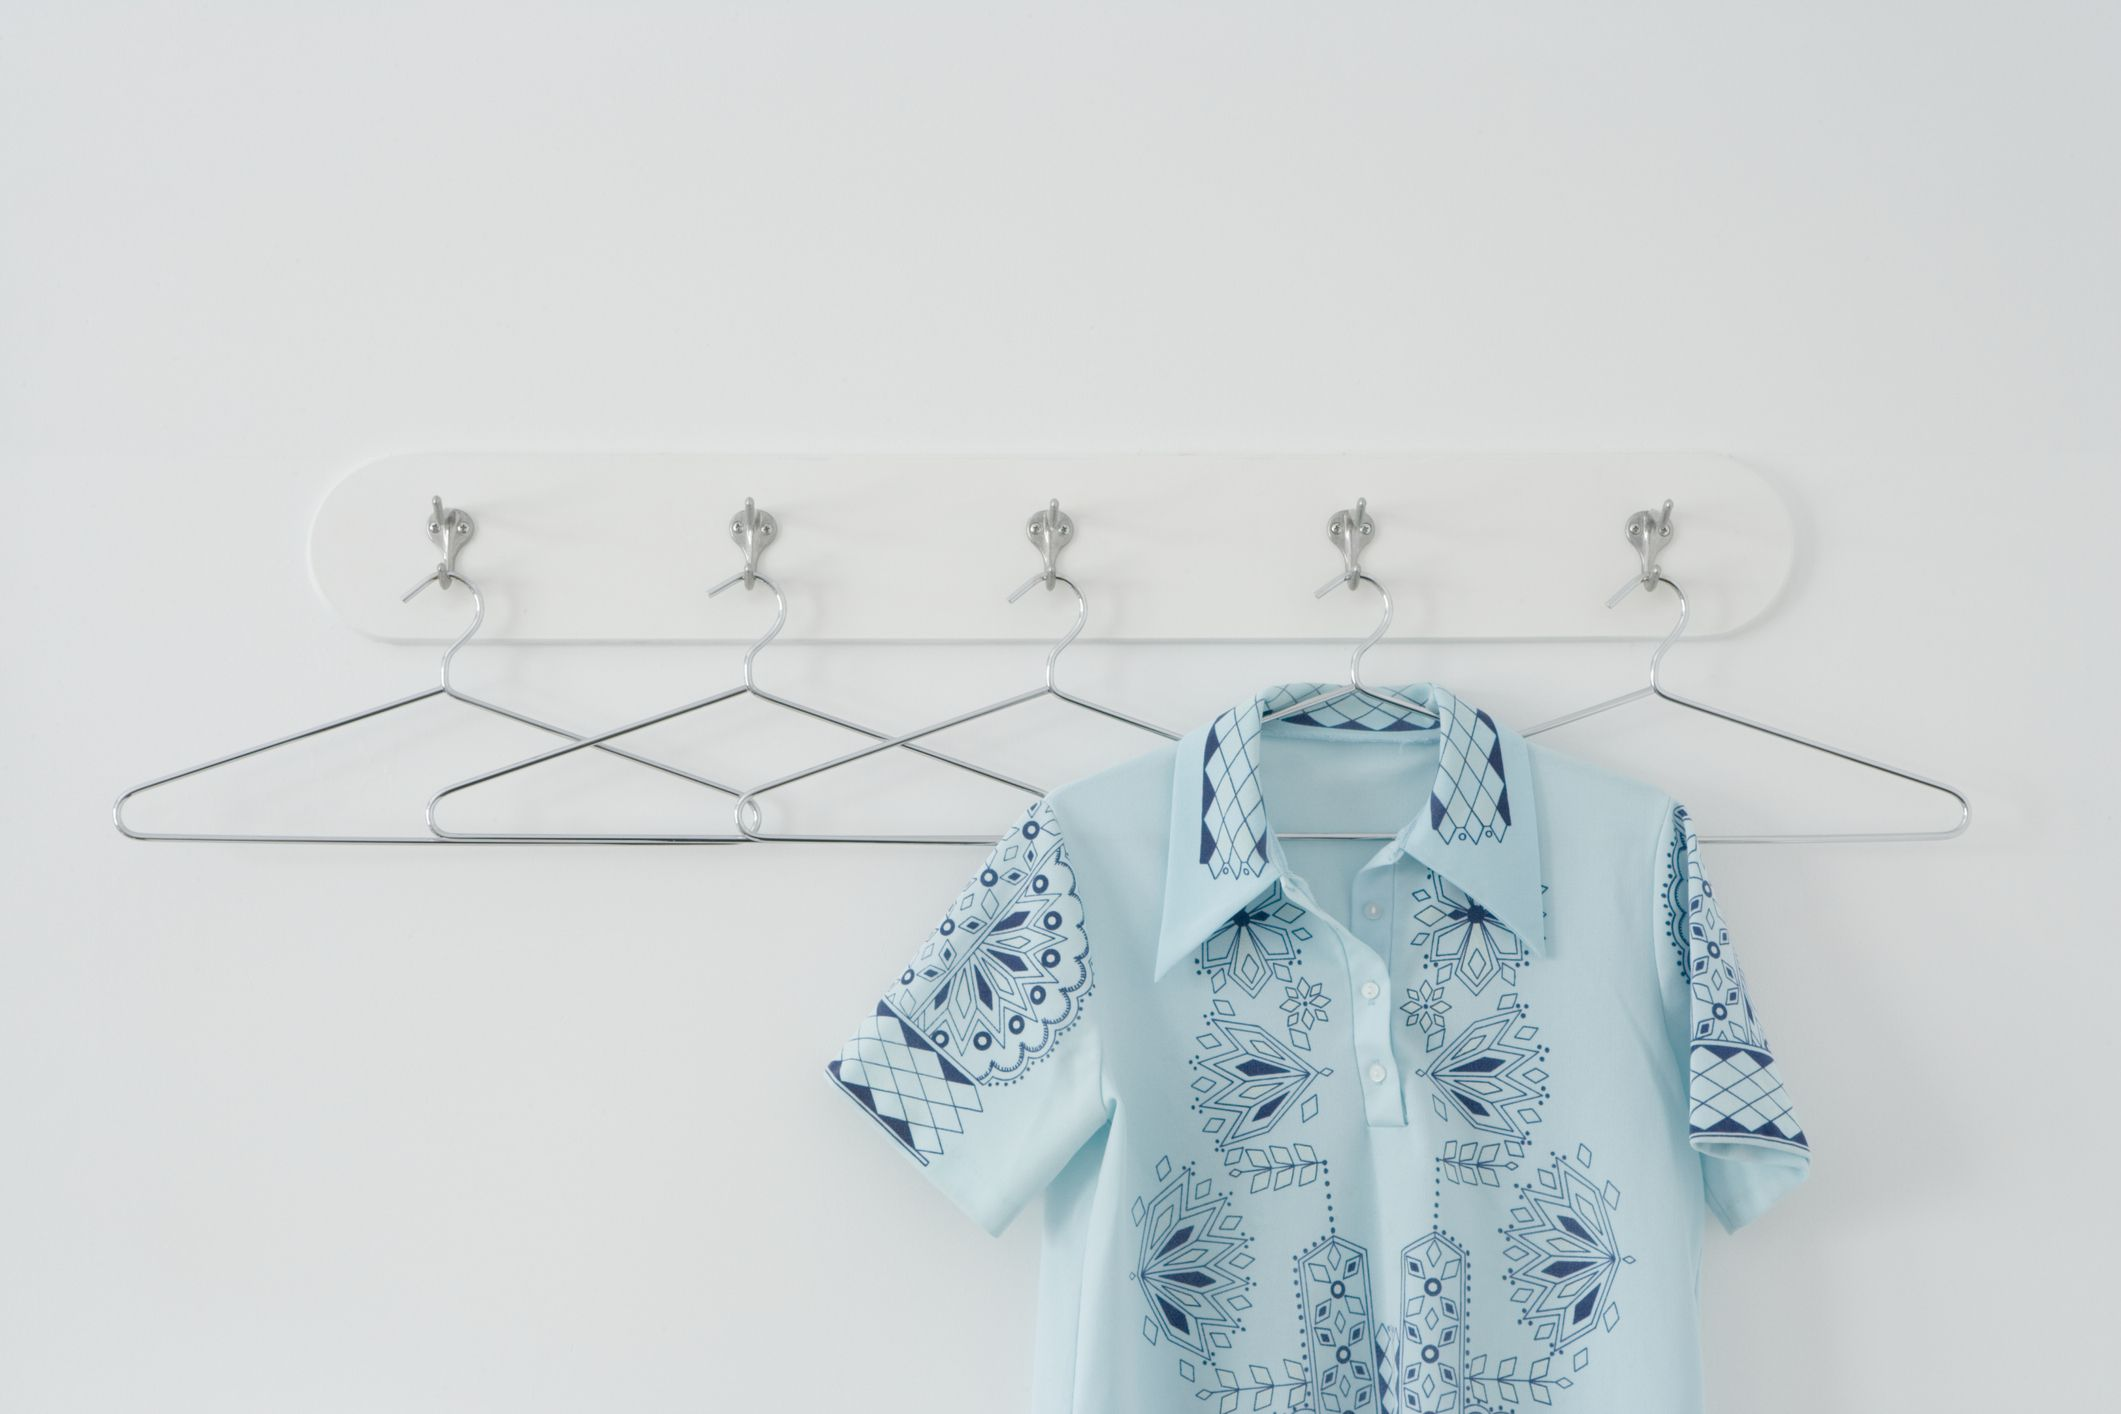 12 New Ways to Use Clothes Hangers